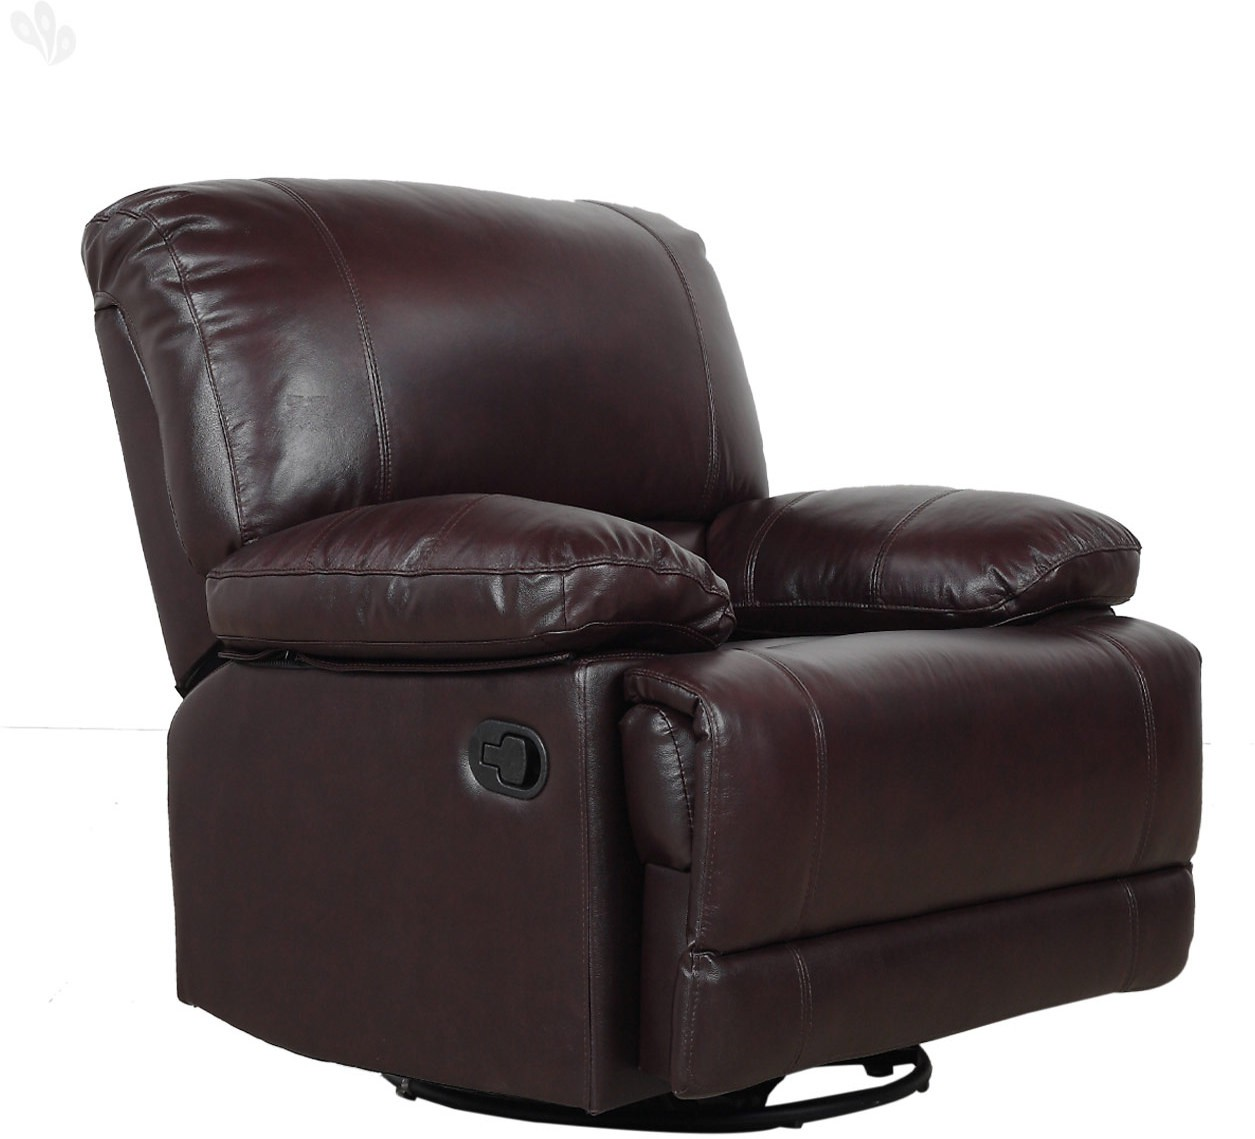 Royal Oak Jersey Leather Manual Rocker Recliners